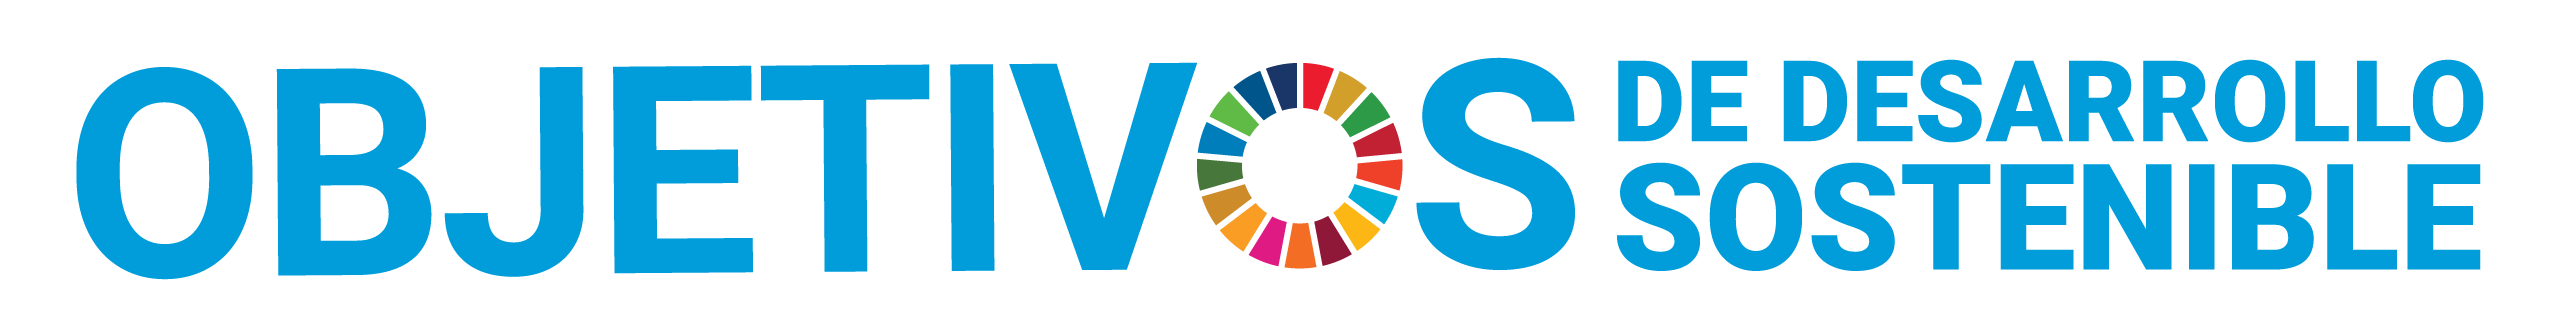 S_SDG_logo_without_UN_emblem_horizontal_Transparent_WEB.png